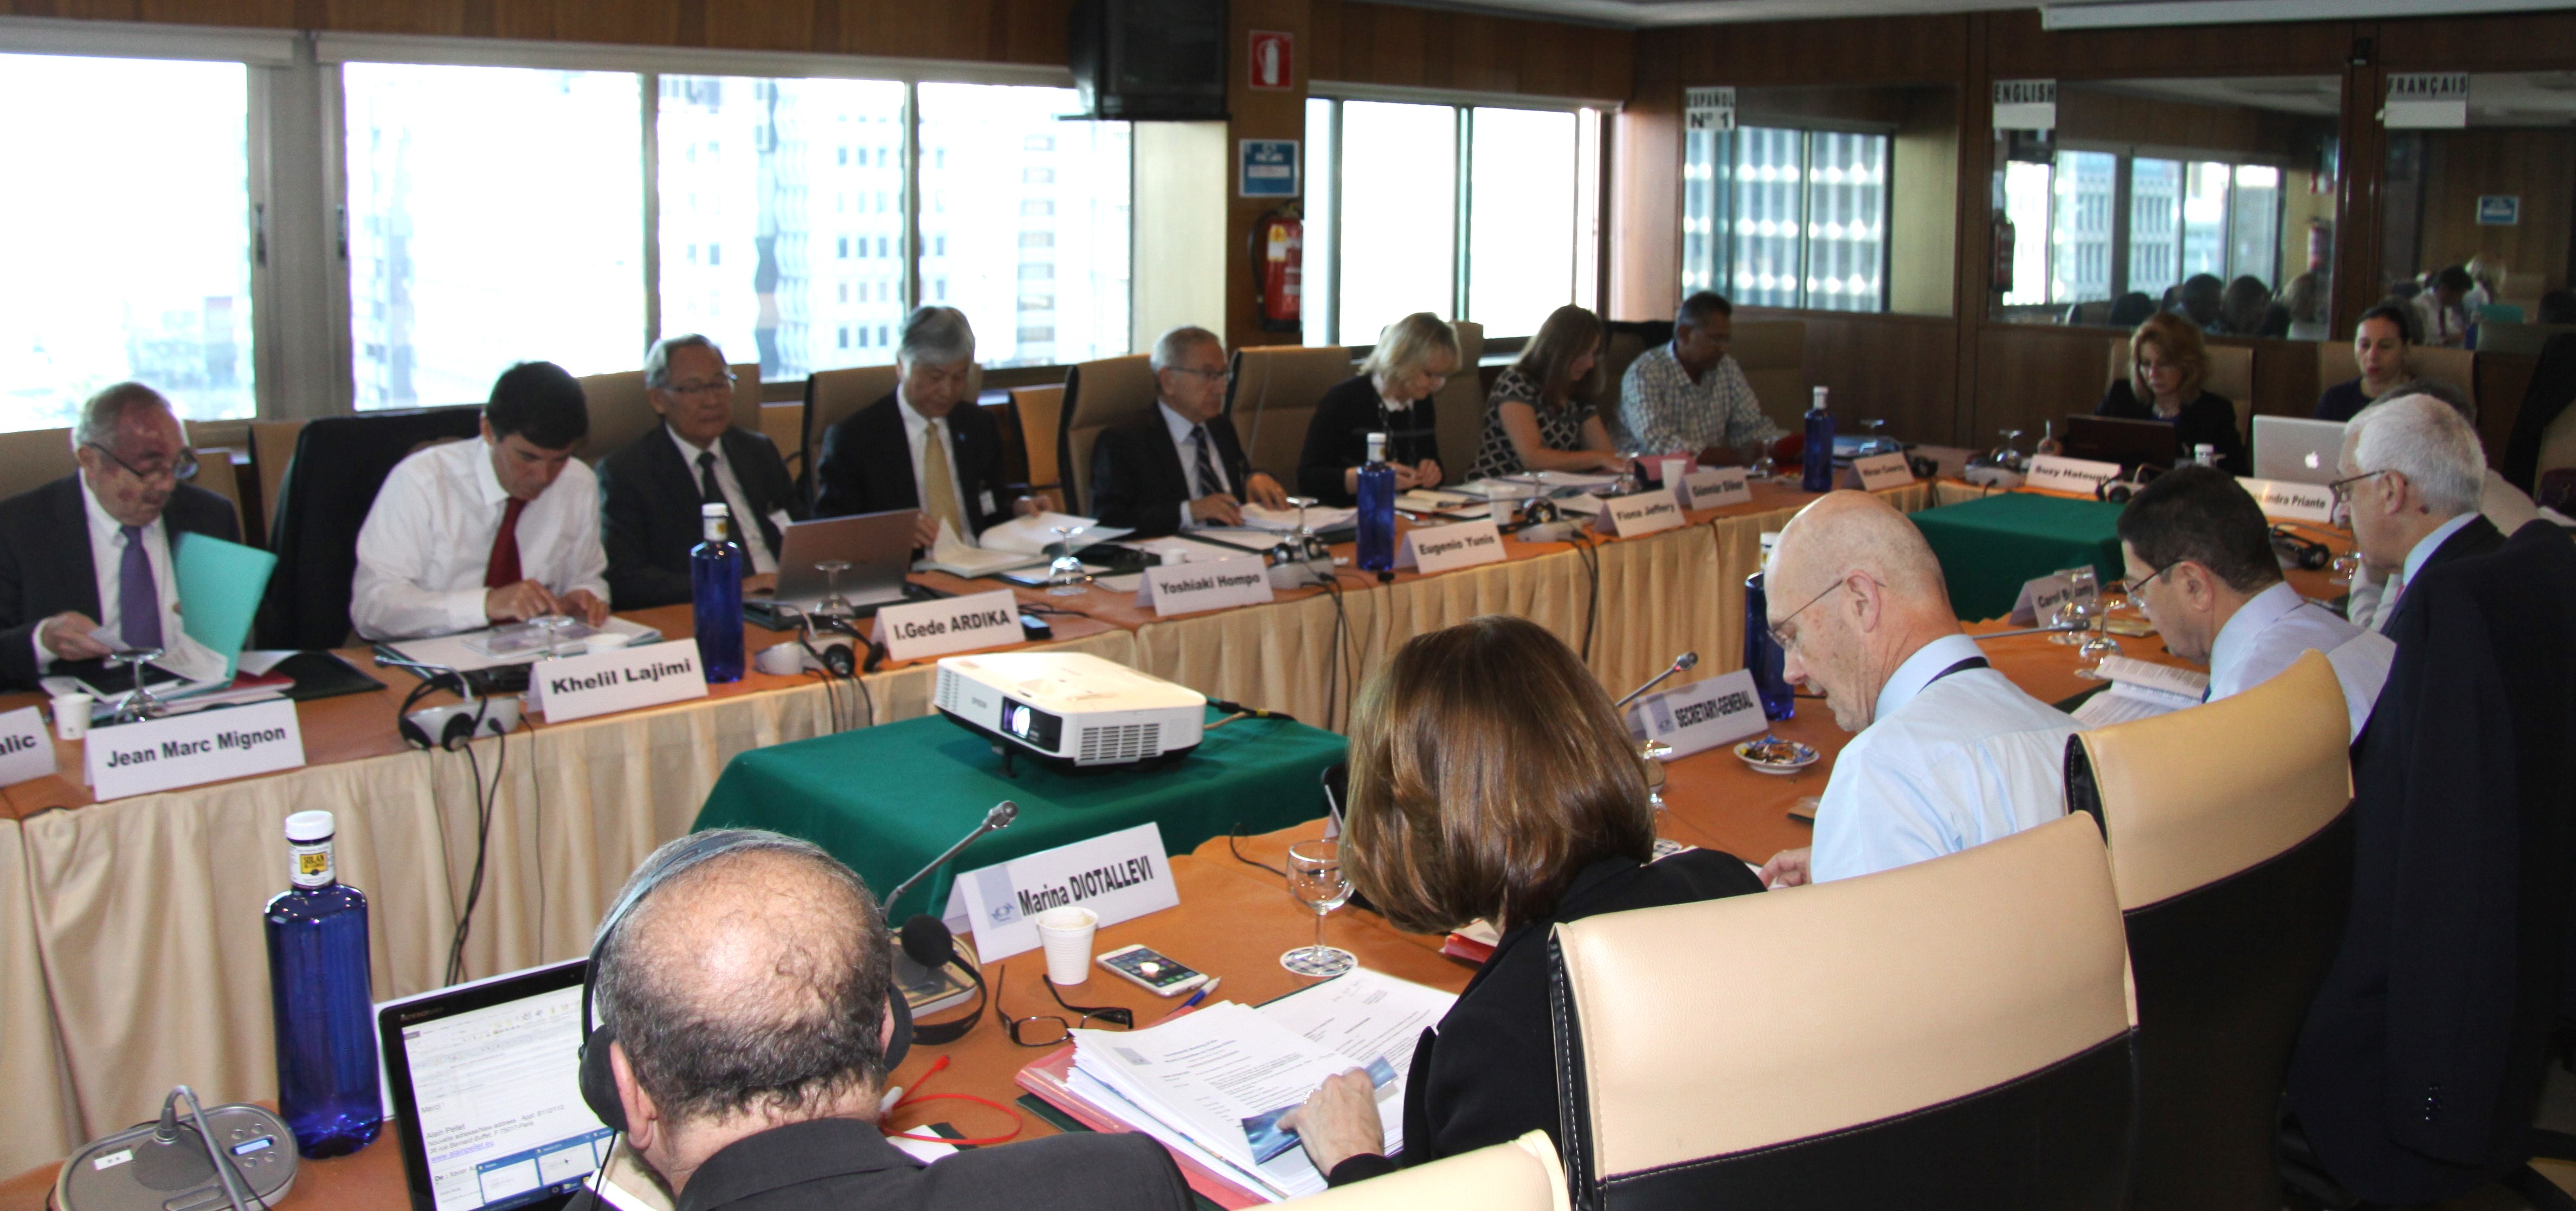 17th-meeting-of-the-world-committee-on-tourism-ethics-madrid-spain-26-17-april-2016_26909118525_o